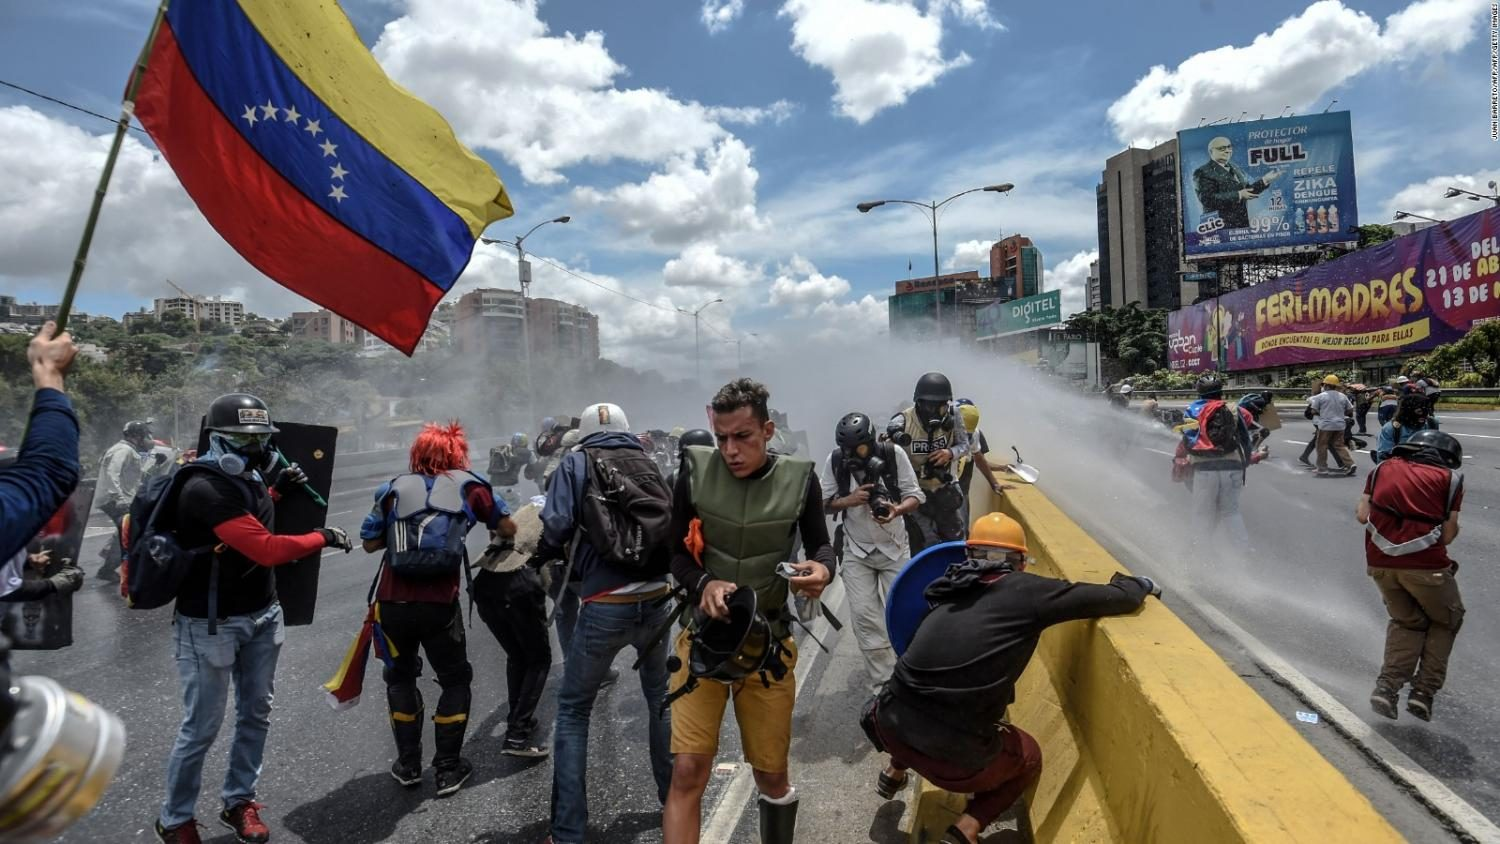 Socialism+is+Destroying+Venezuela%2C+Experts+Say